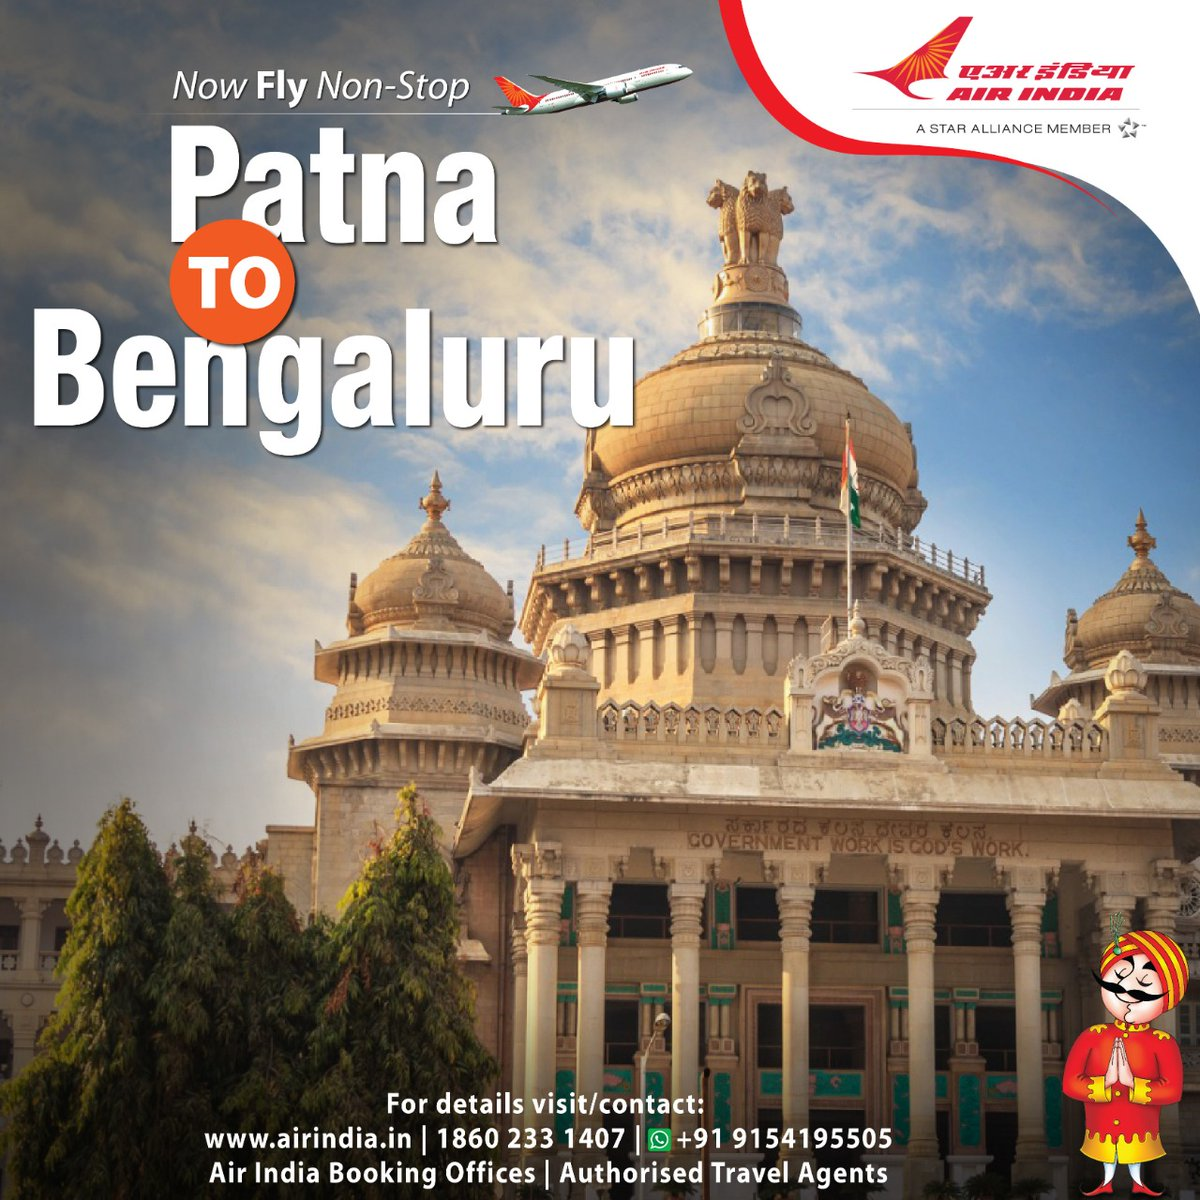 #FlyAI : Fly non-stop from Patna to Bengaluru.  To book seats, please visit our website  or call us on 18602331407.